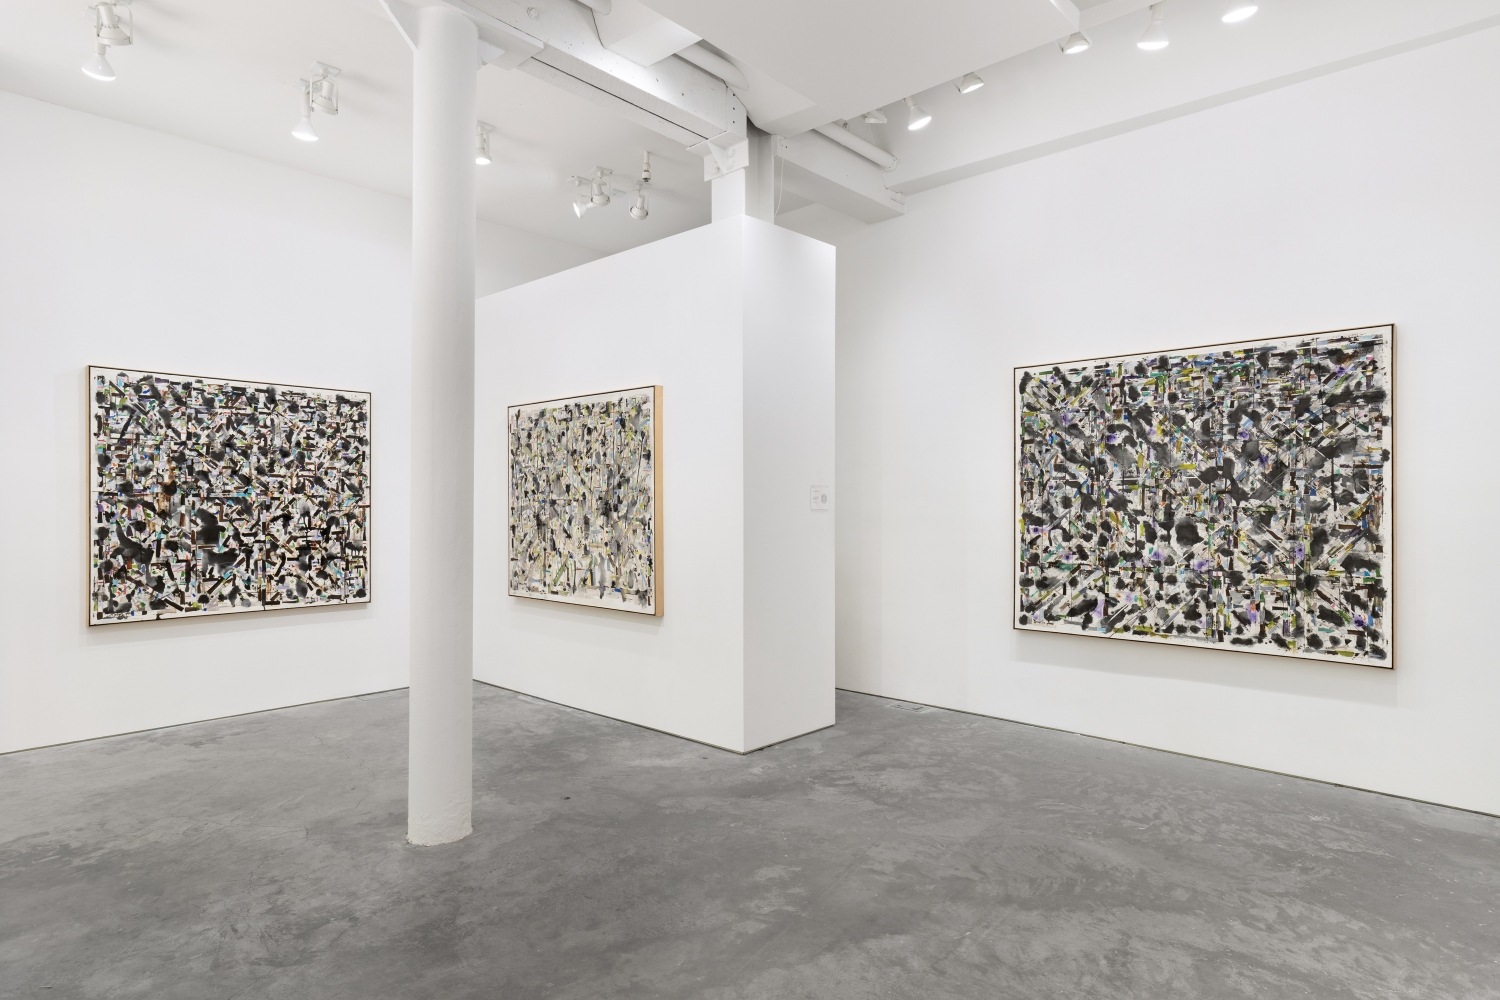 Young-Il Ahn: 20 Years After (installation view)